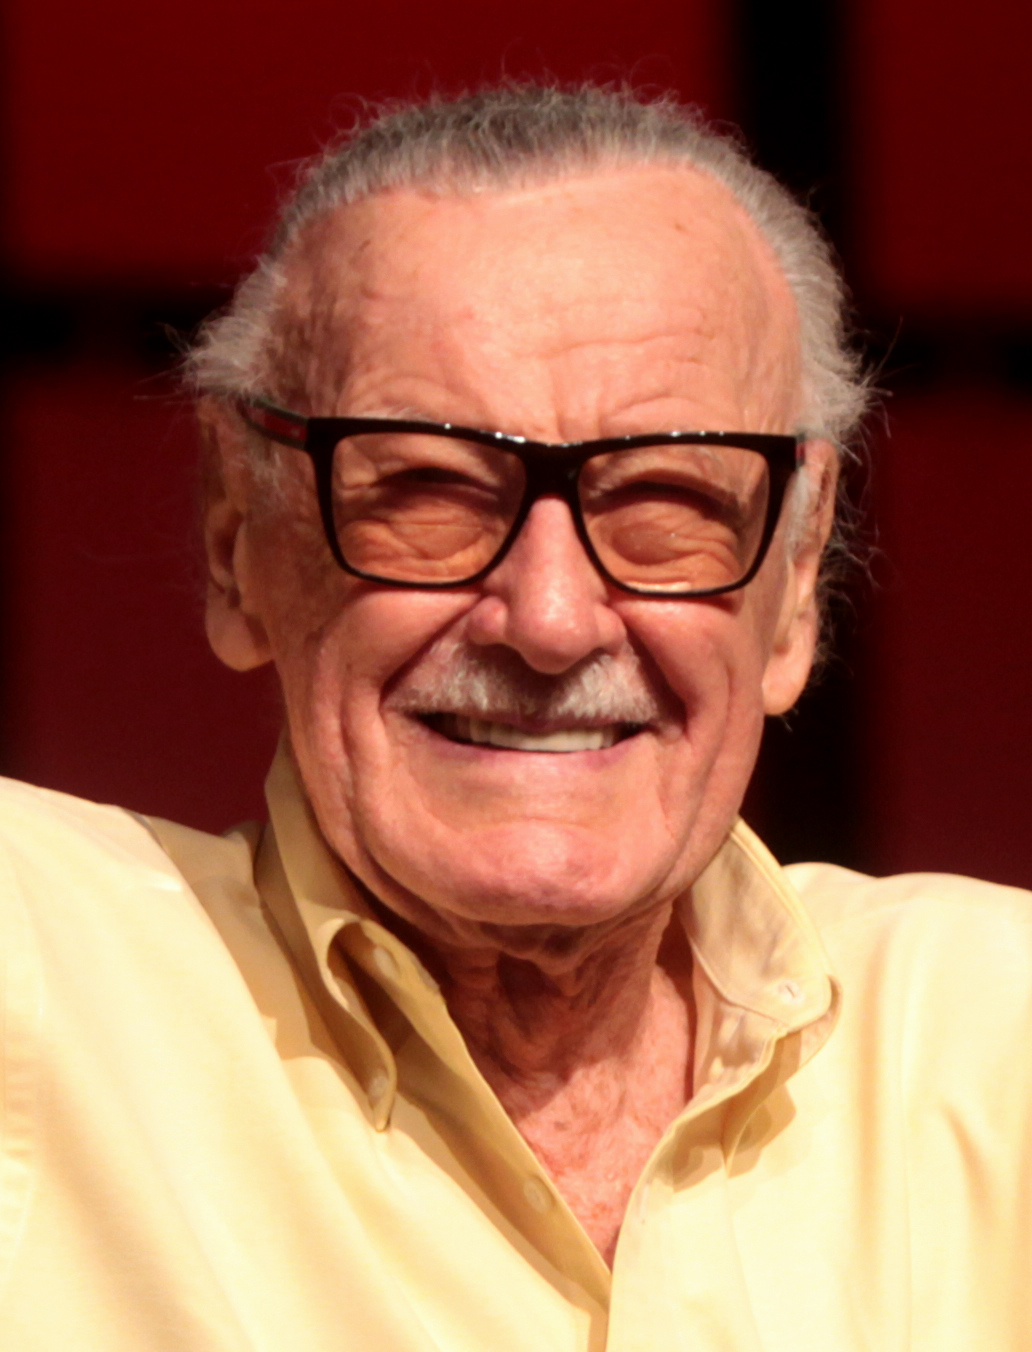 Superhero comic book creator and editor, Stan Lee